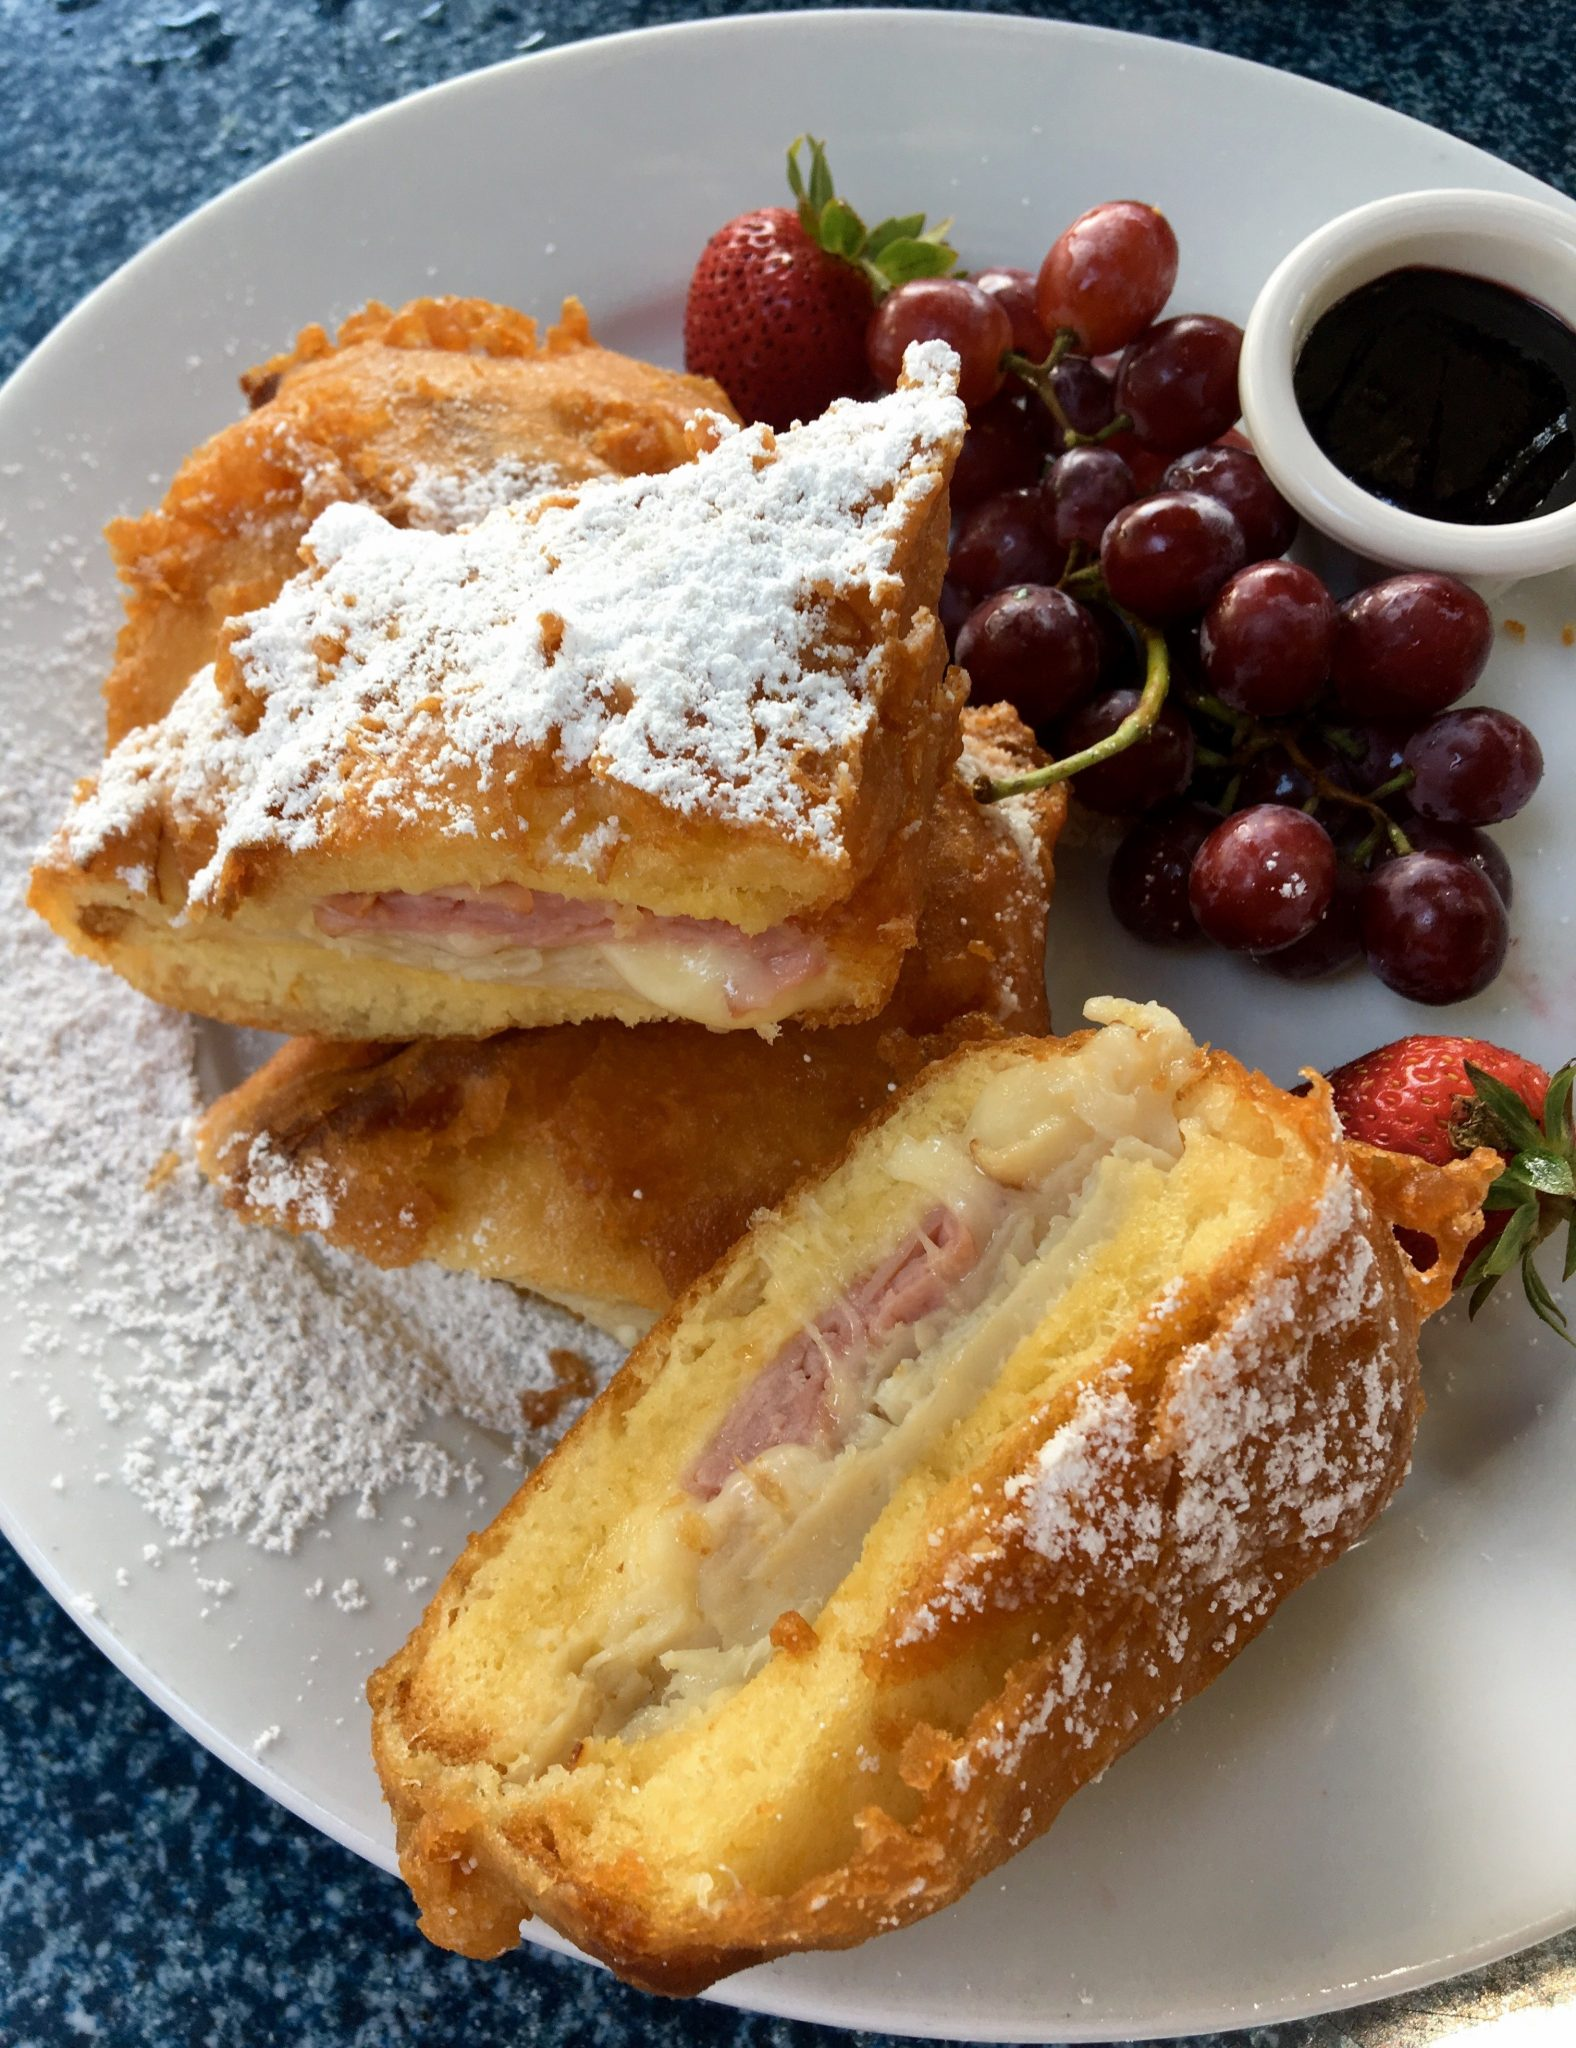 Experience A Taste of the French Quarter at Cafe Orleans